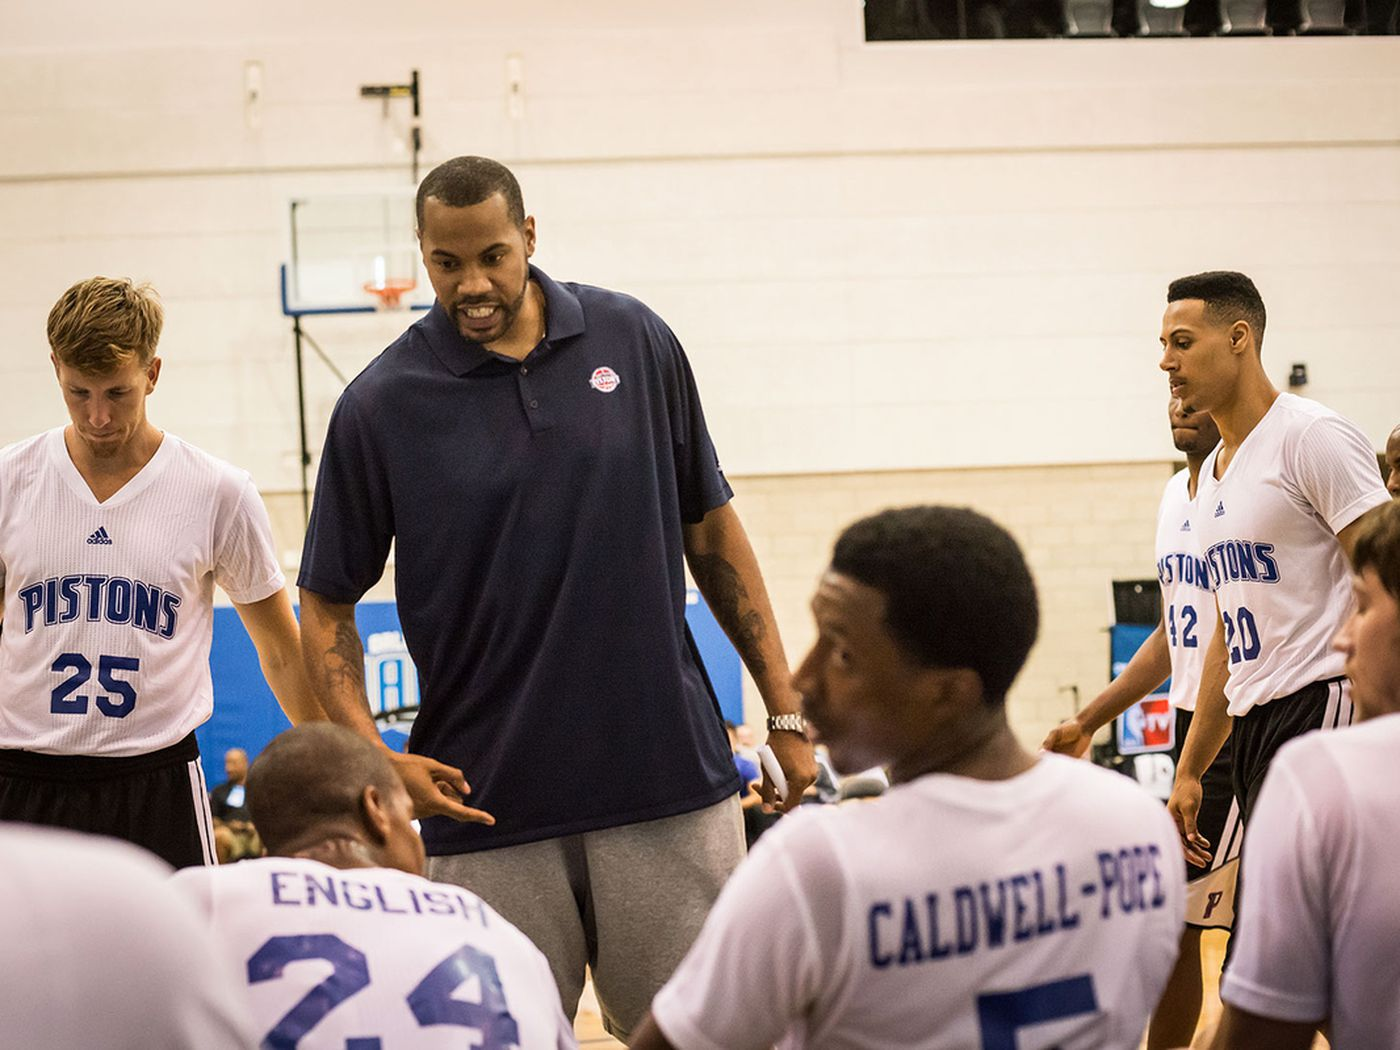 d00252a3aec9 NBA Orlando Summer League  Inside look at Rasheed Wallace s coaching debut  - Detroit Bad Boys